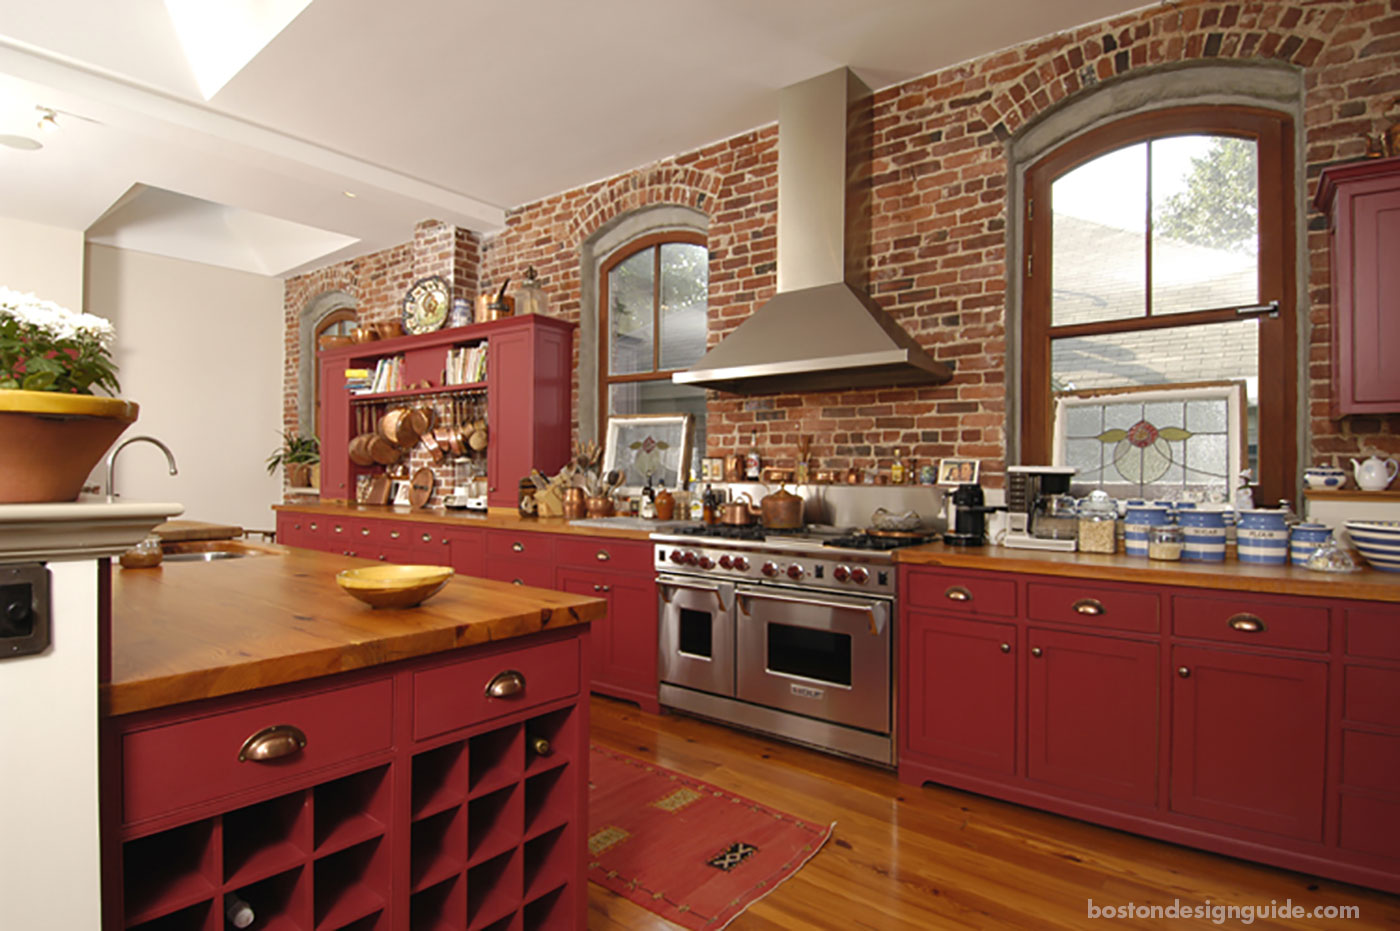 Red kitchen renovation with exposed brick by S+H Construction